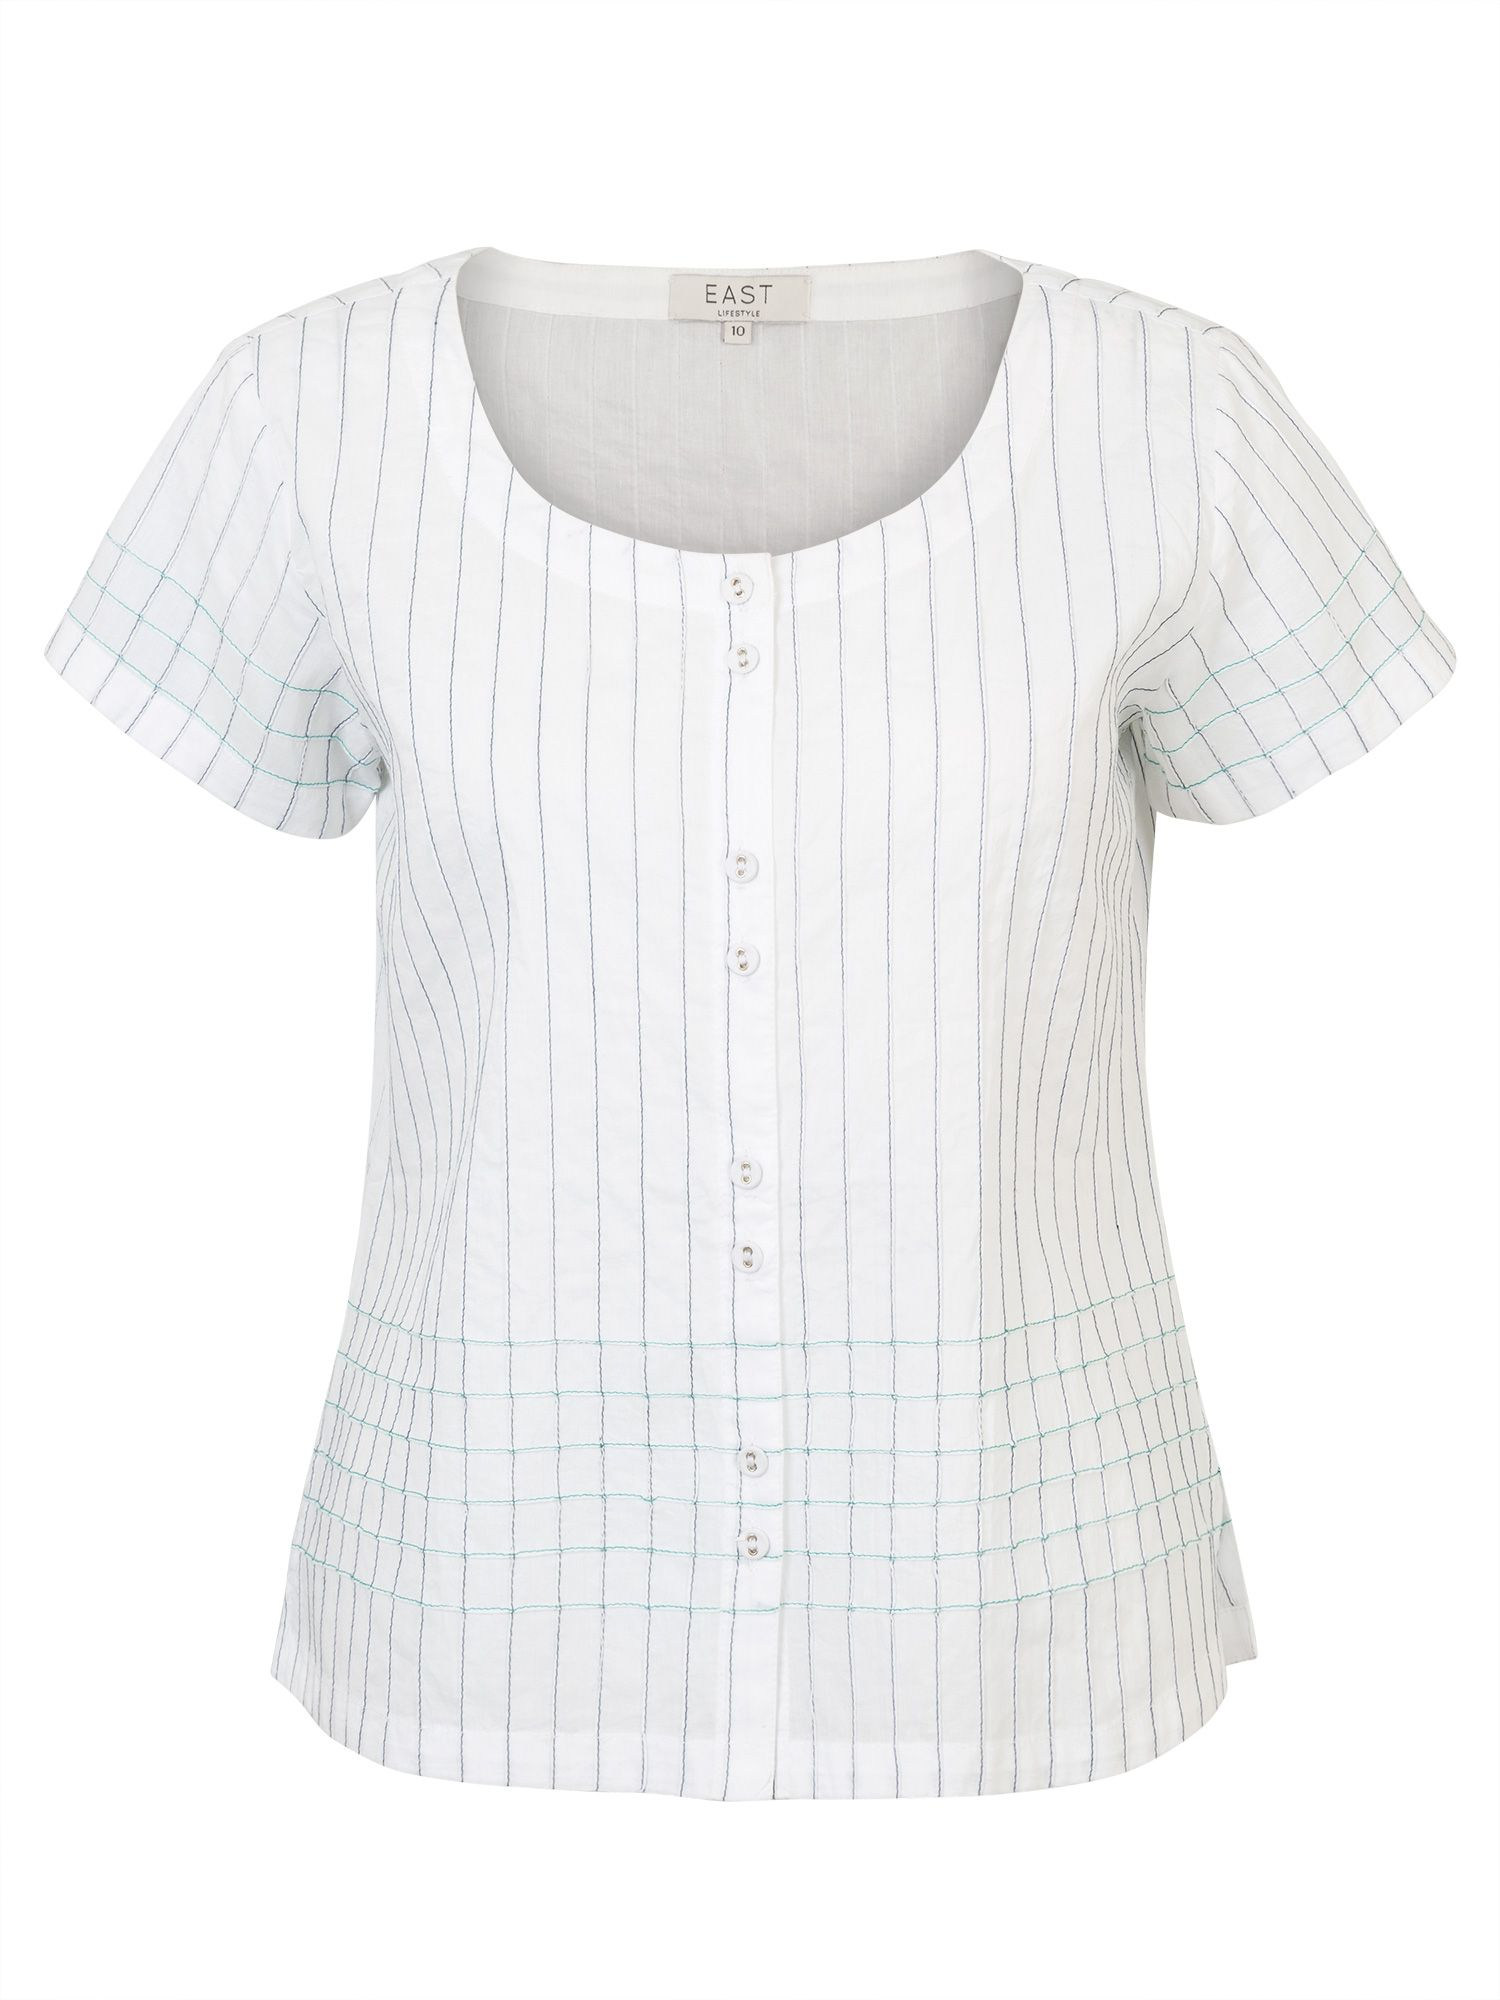 East Contrast Stitch Pintuck Top, White